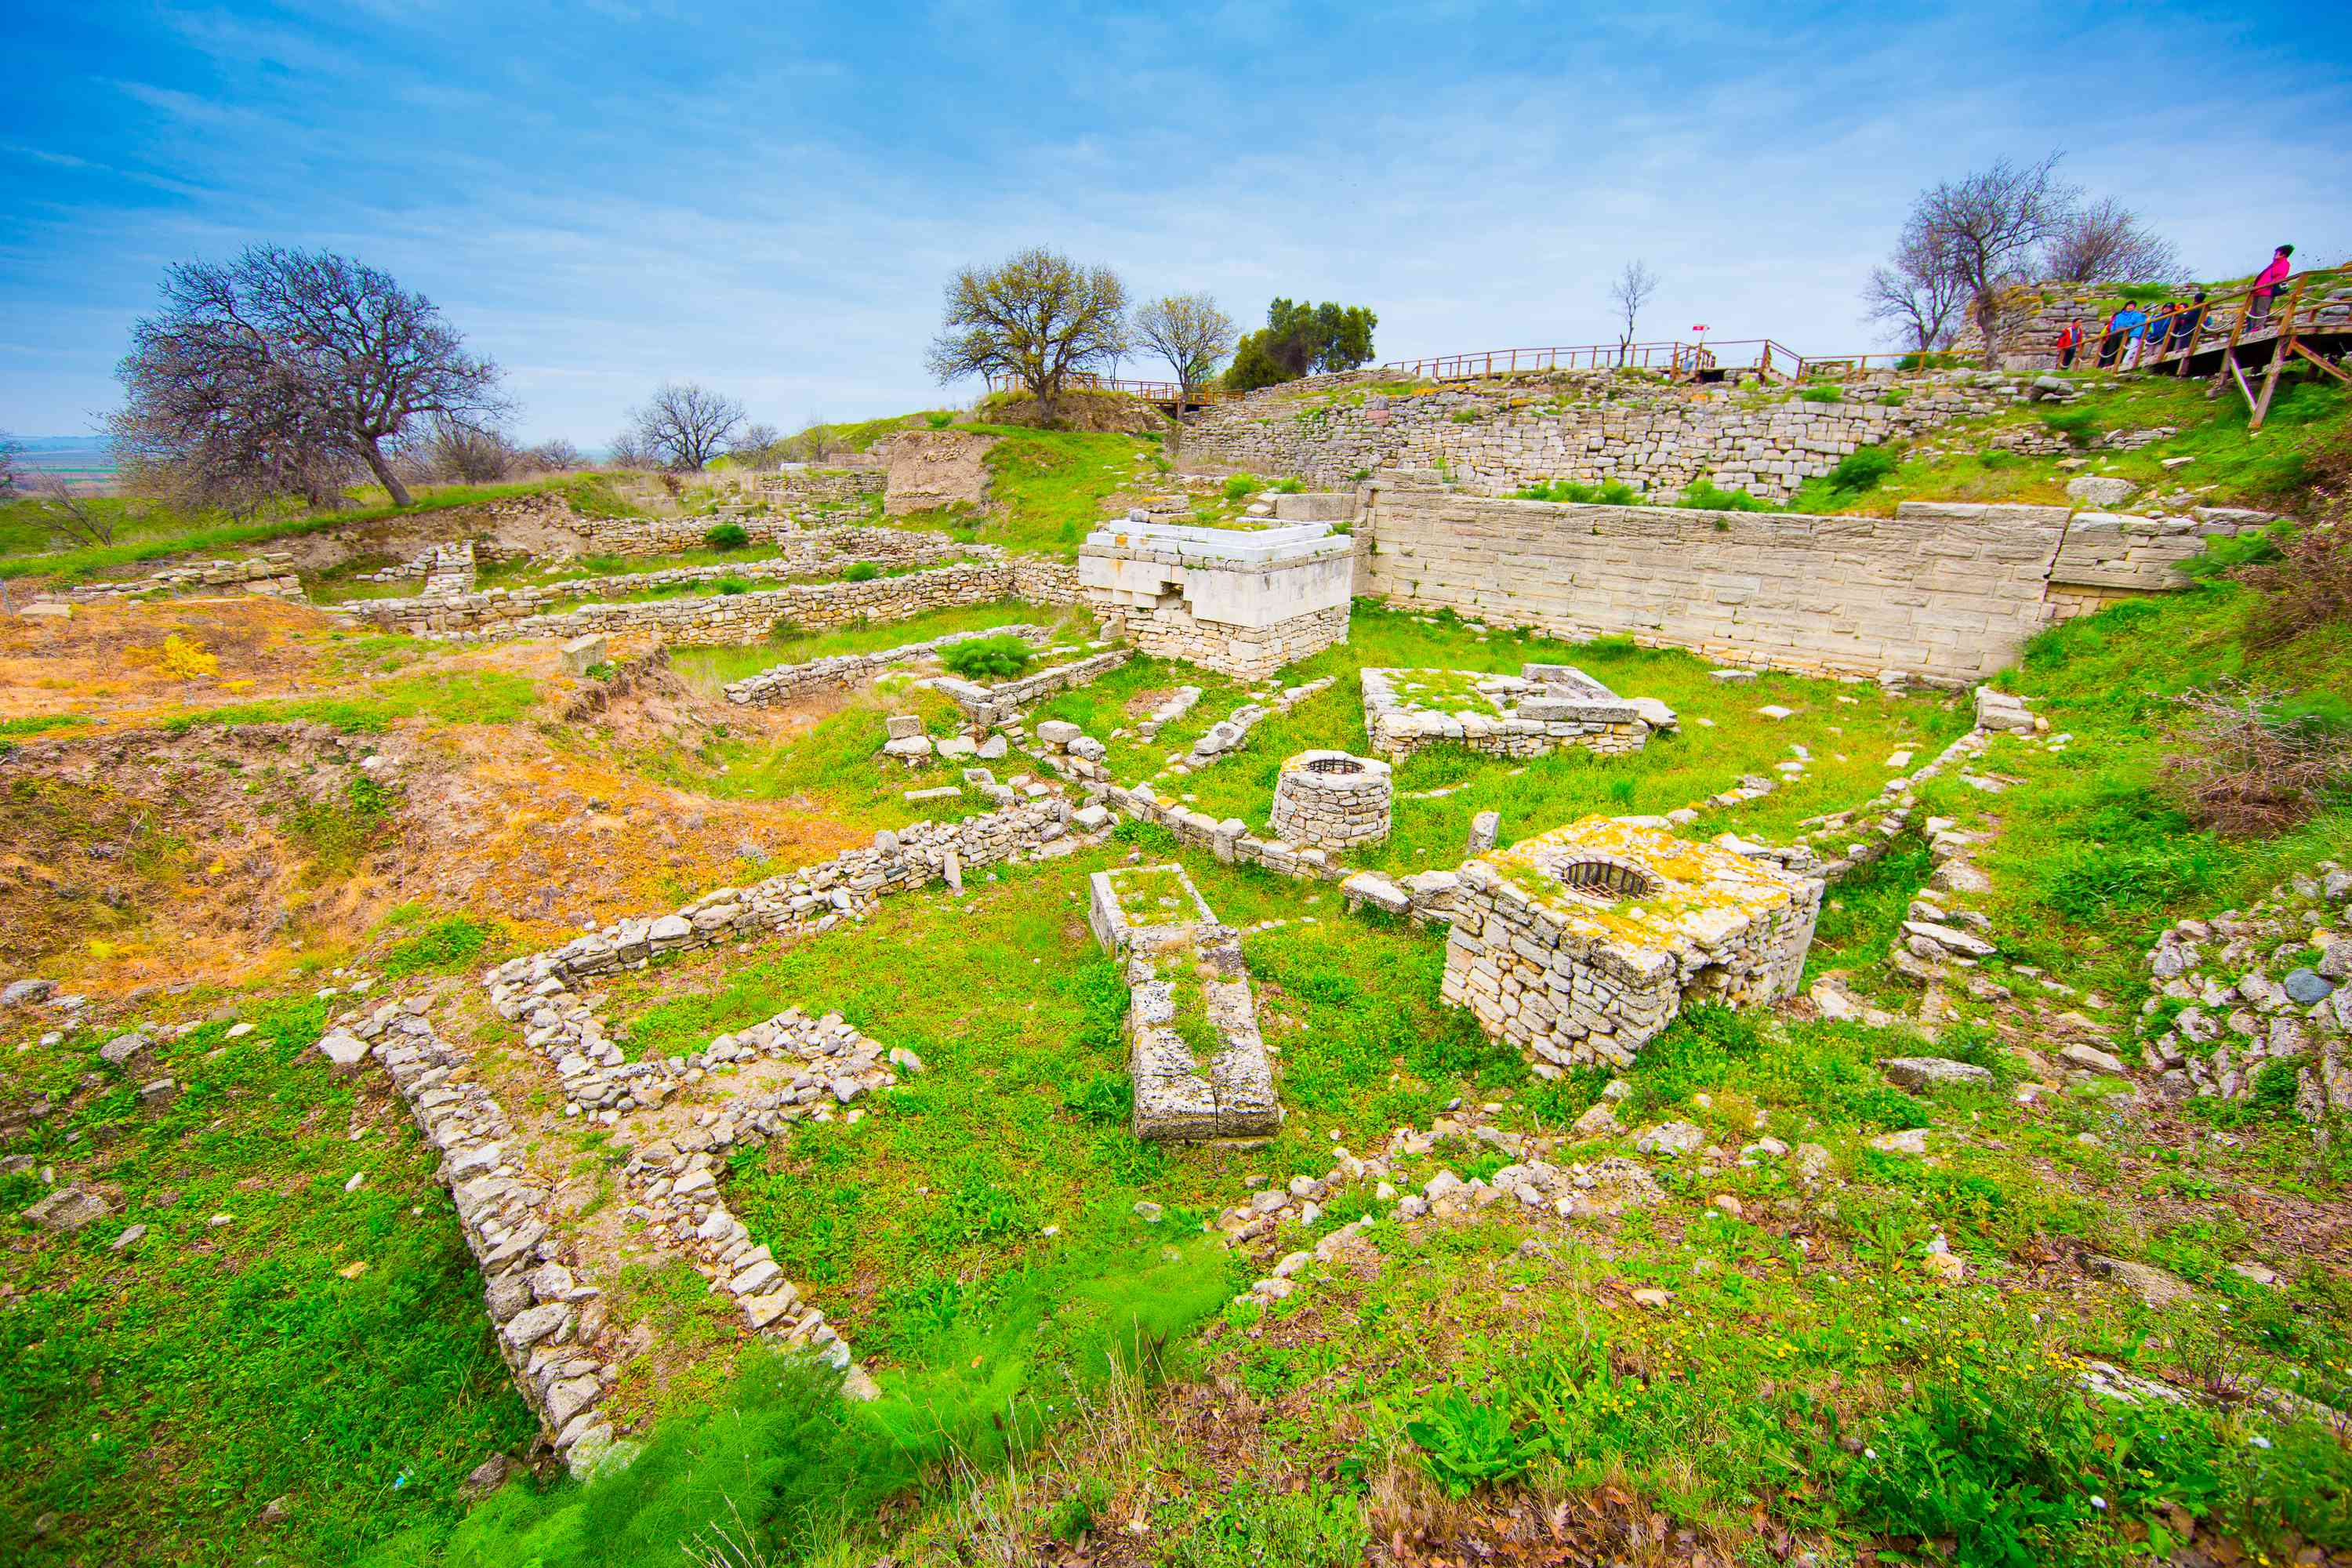 The Ruins of Troy in modern-day Turkey